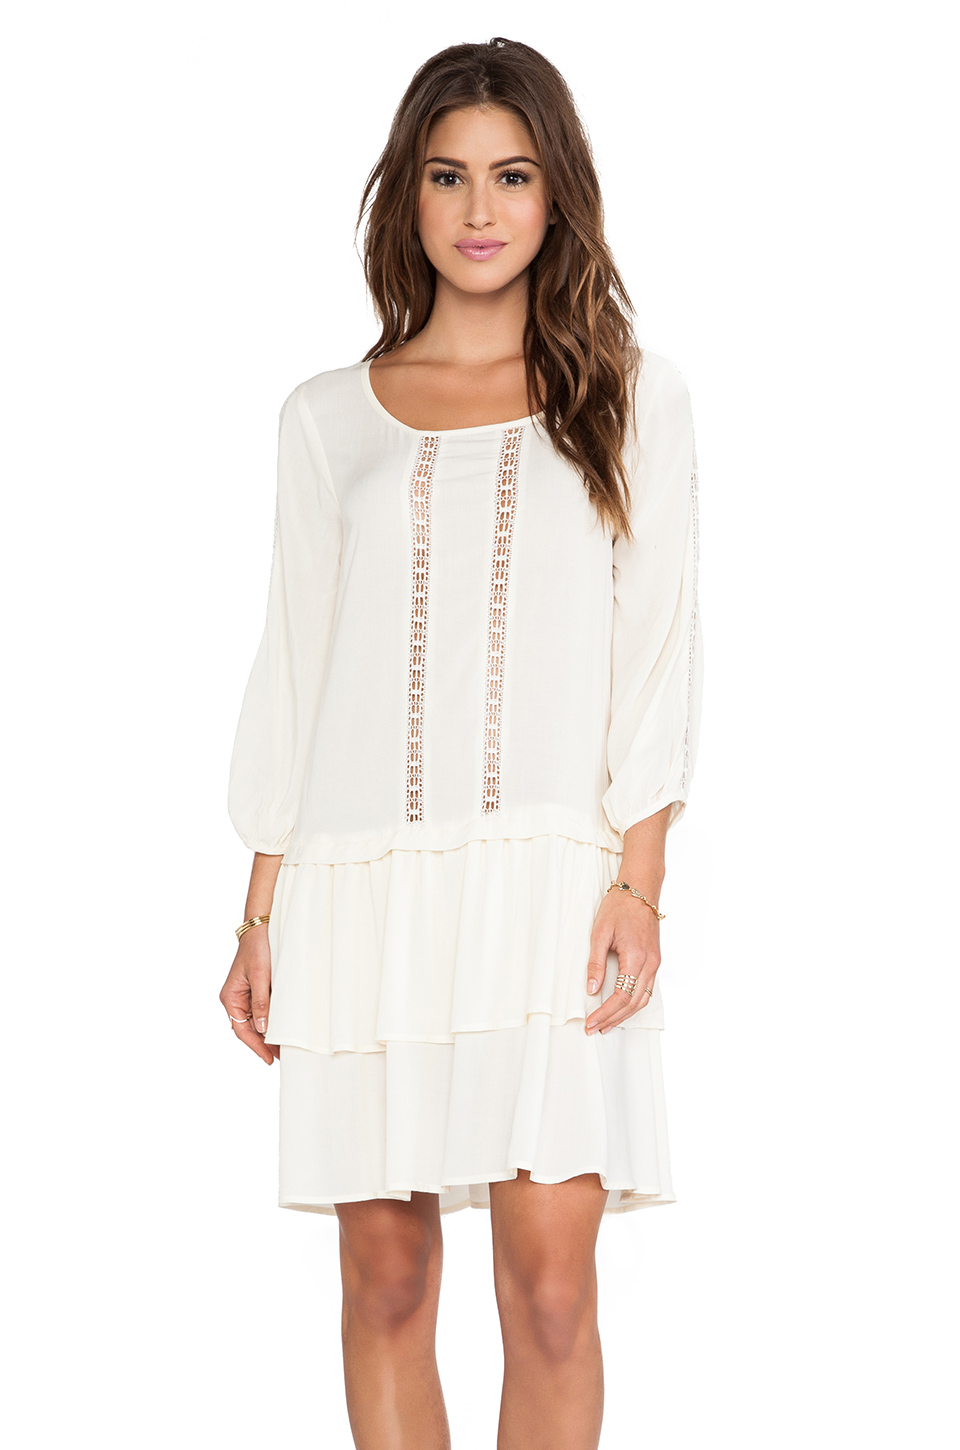 Ella Moss Elin Dress in Cream from REVOLVEclothing.com